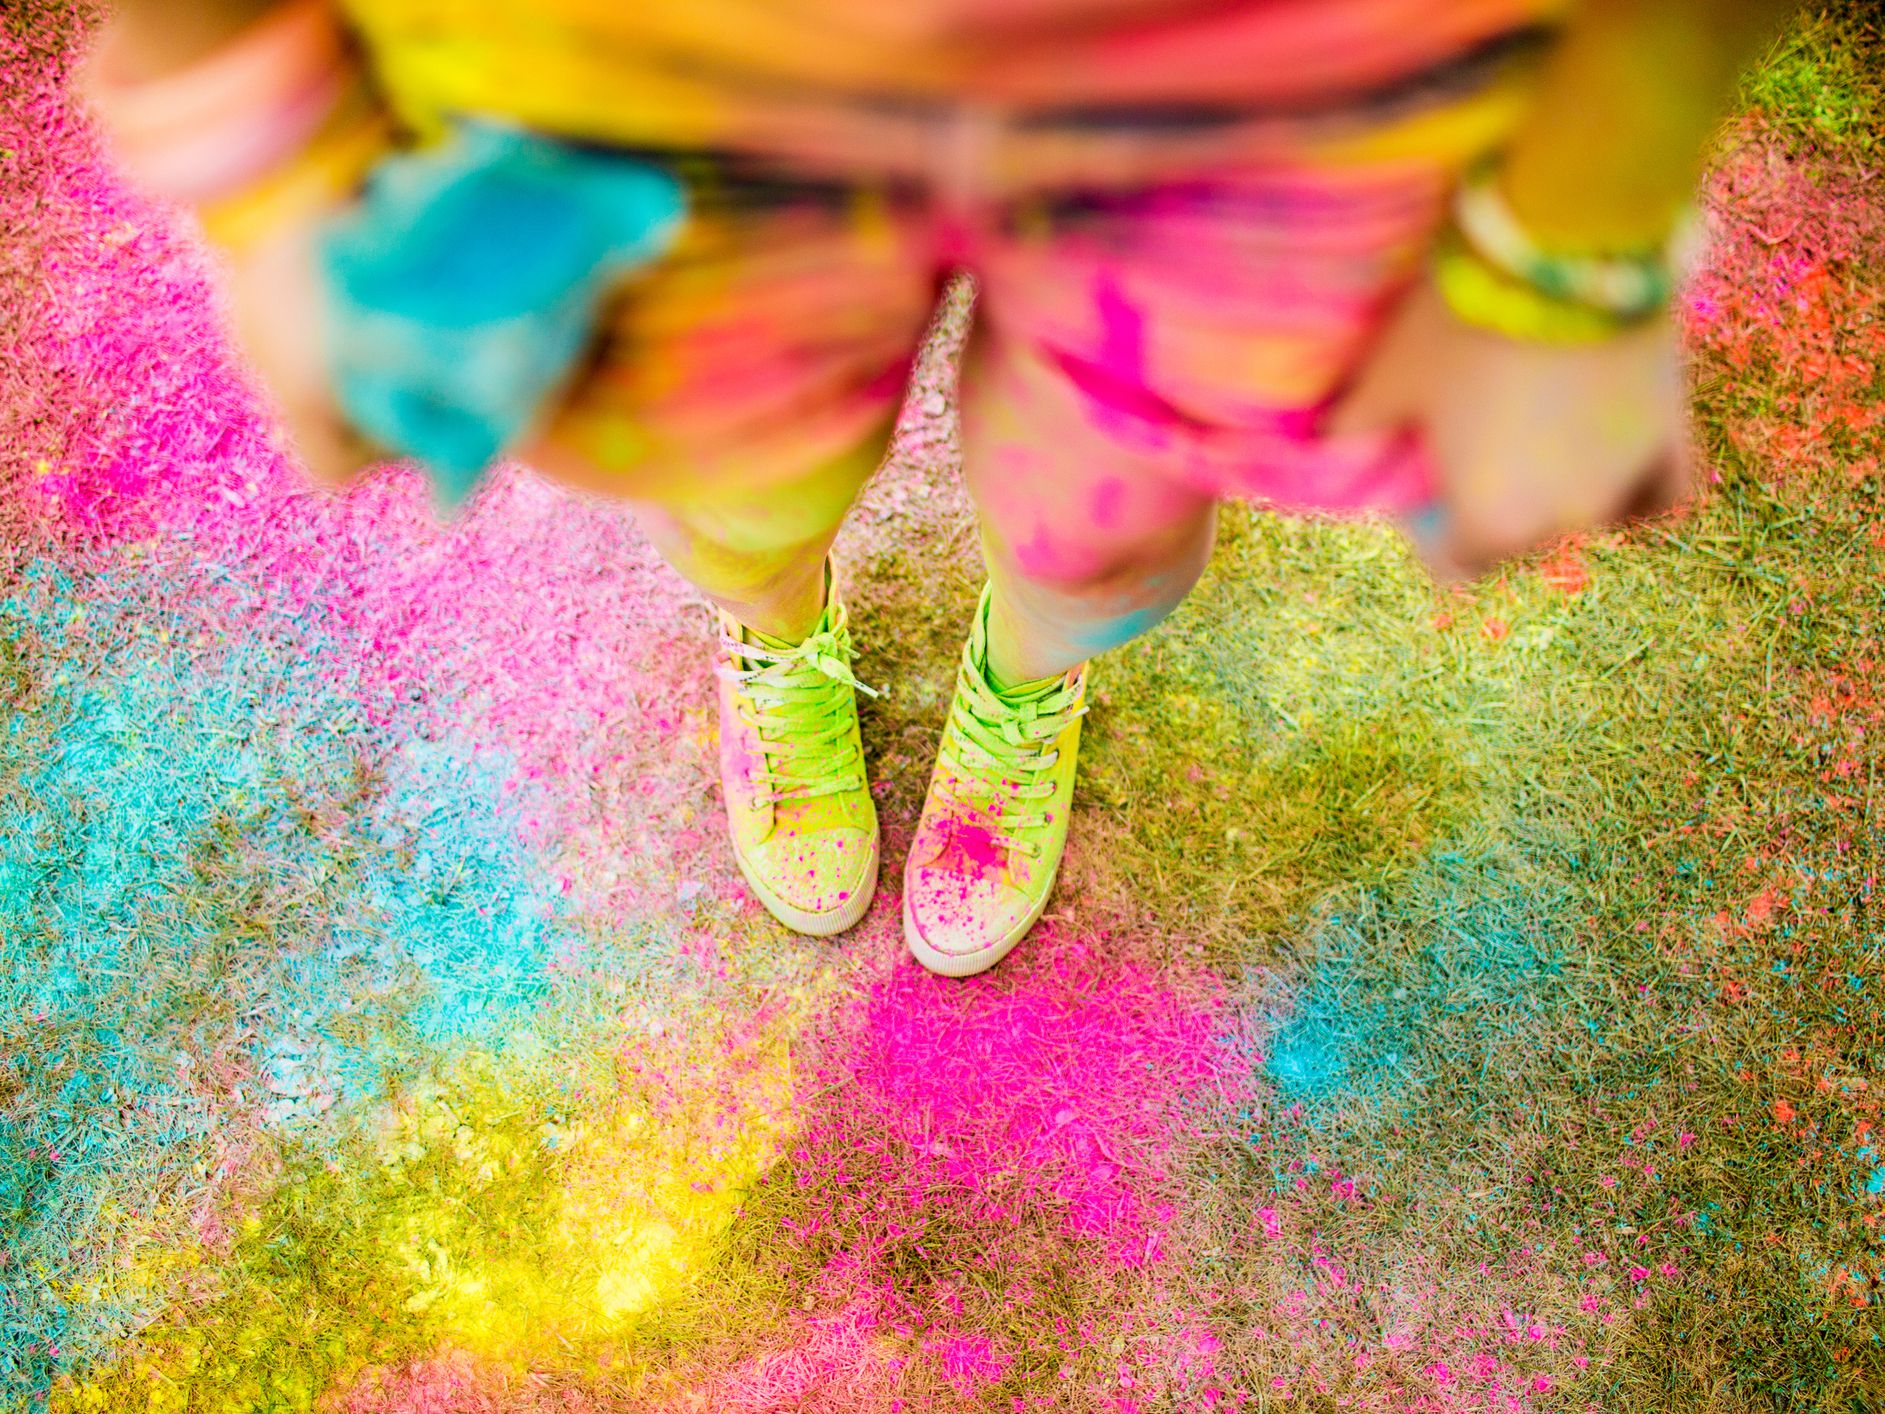 How To Throw A Color Powder Party For Kids